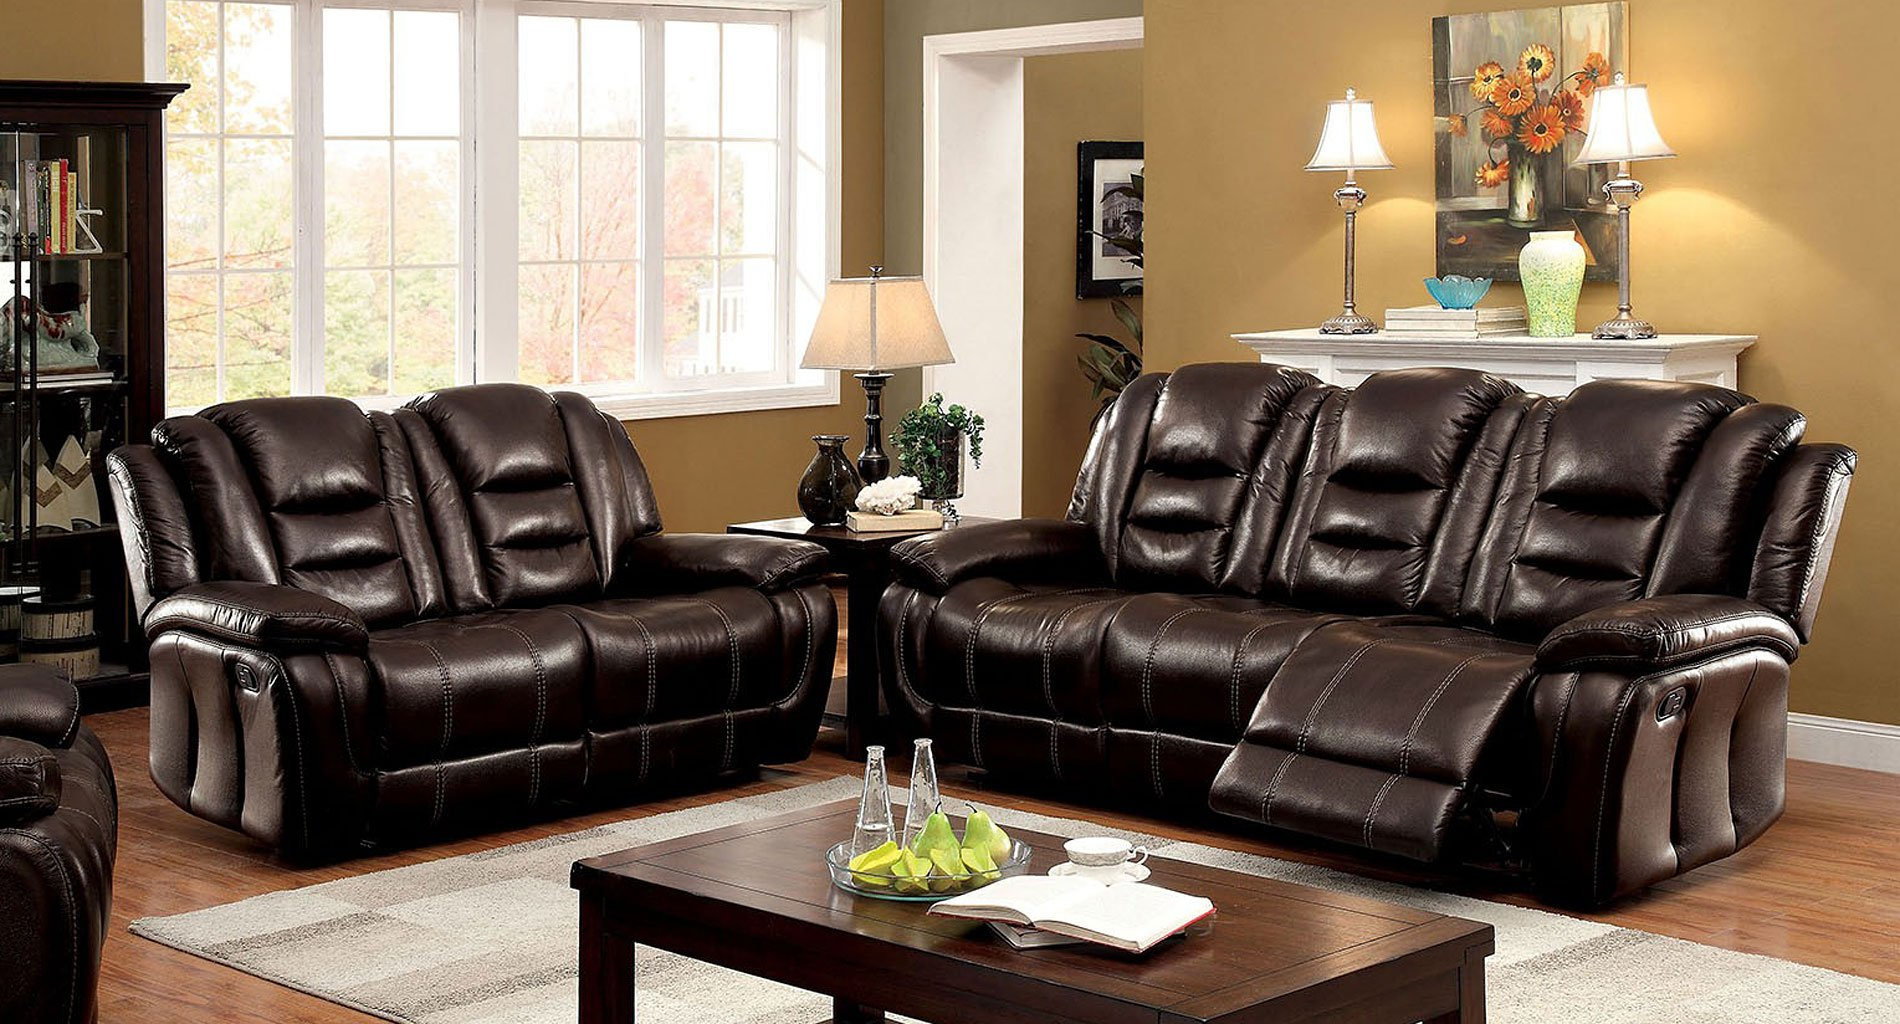 Ronan reclining living room set living room sets for Living room furniture 0 finance